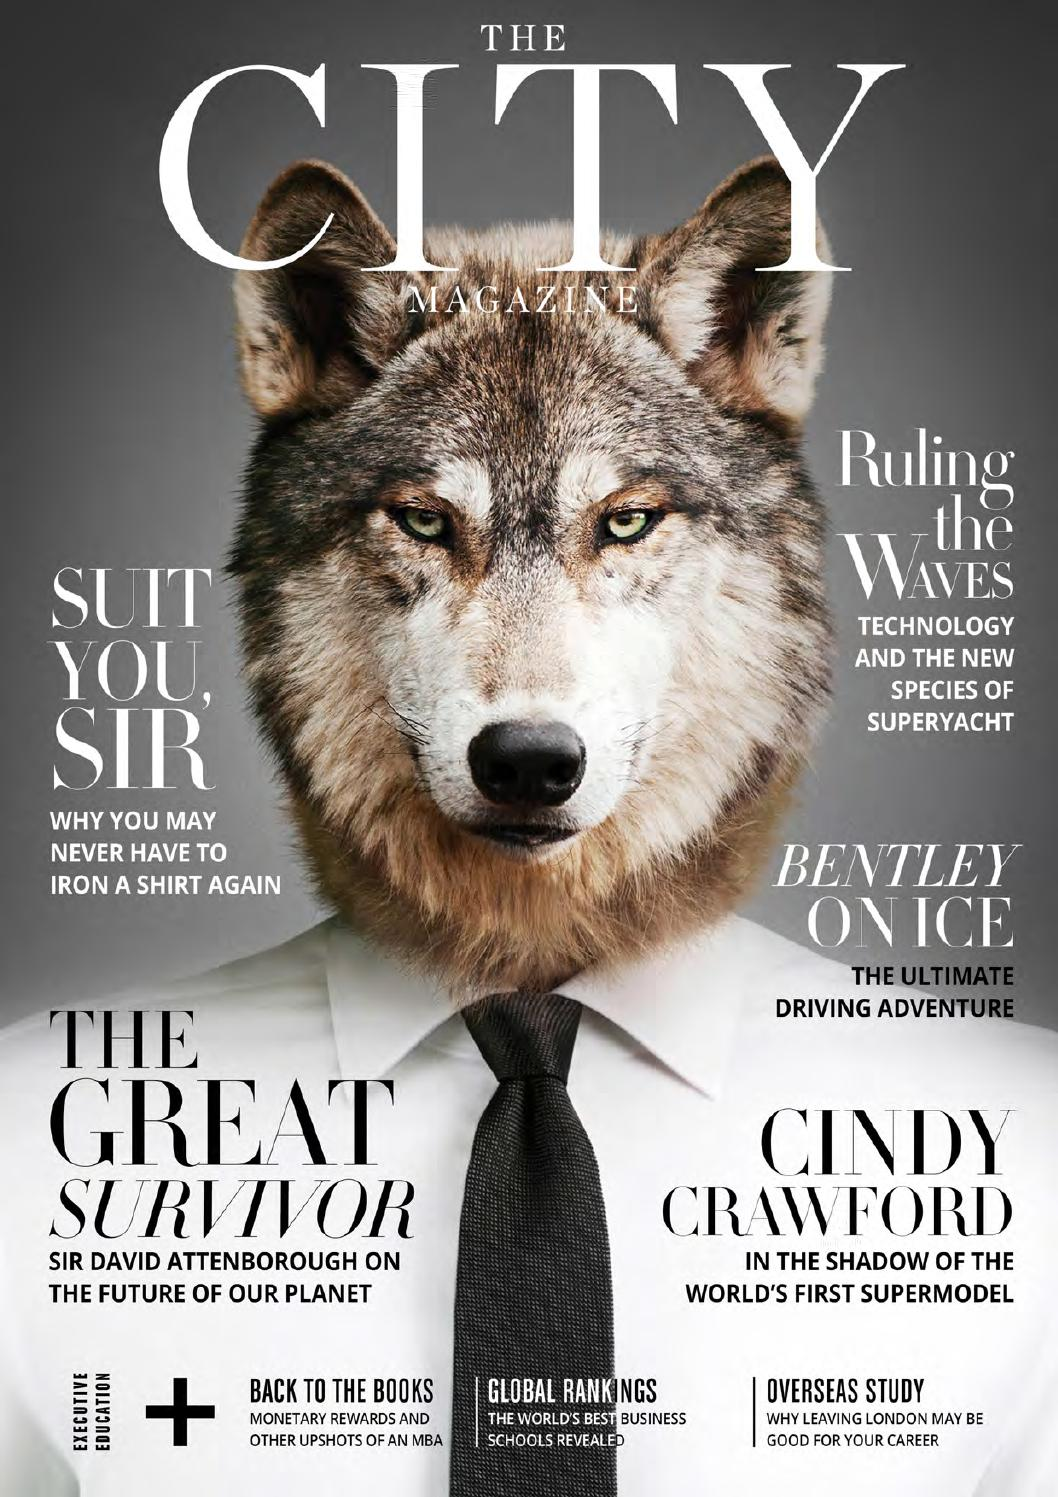 The City Magazine March 2015 By Runwild Media Group Issuu Image Entertainment Short Circuit 2 Bluray Pricefalls